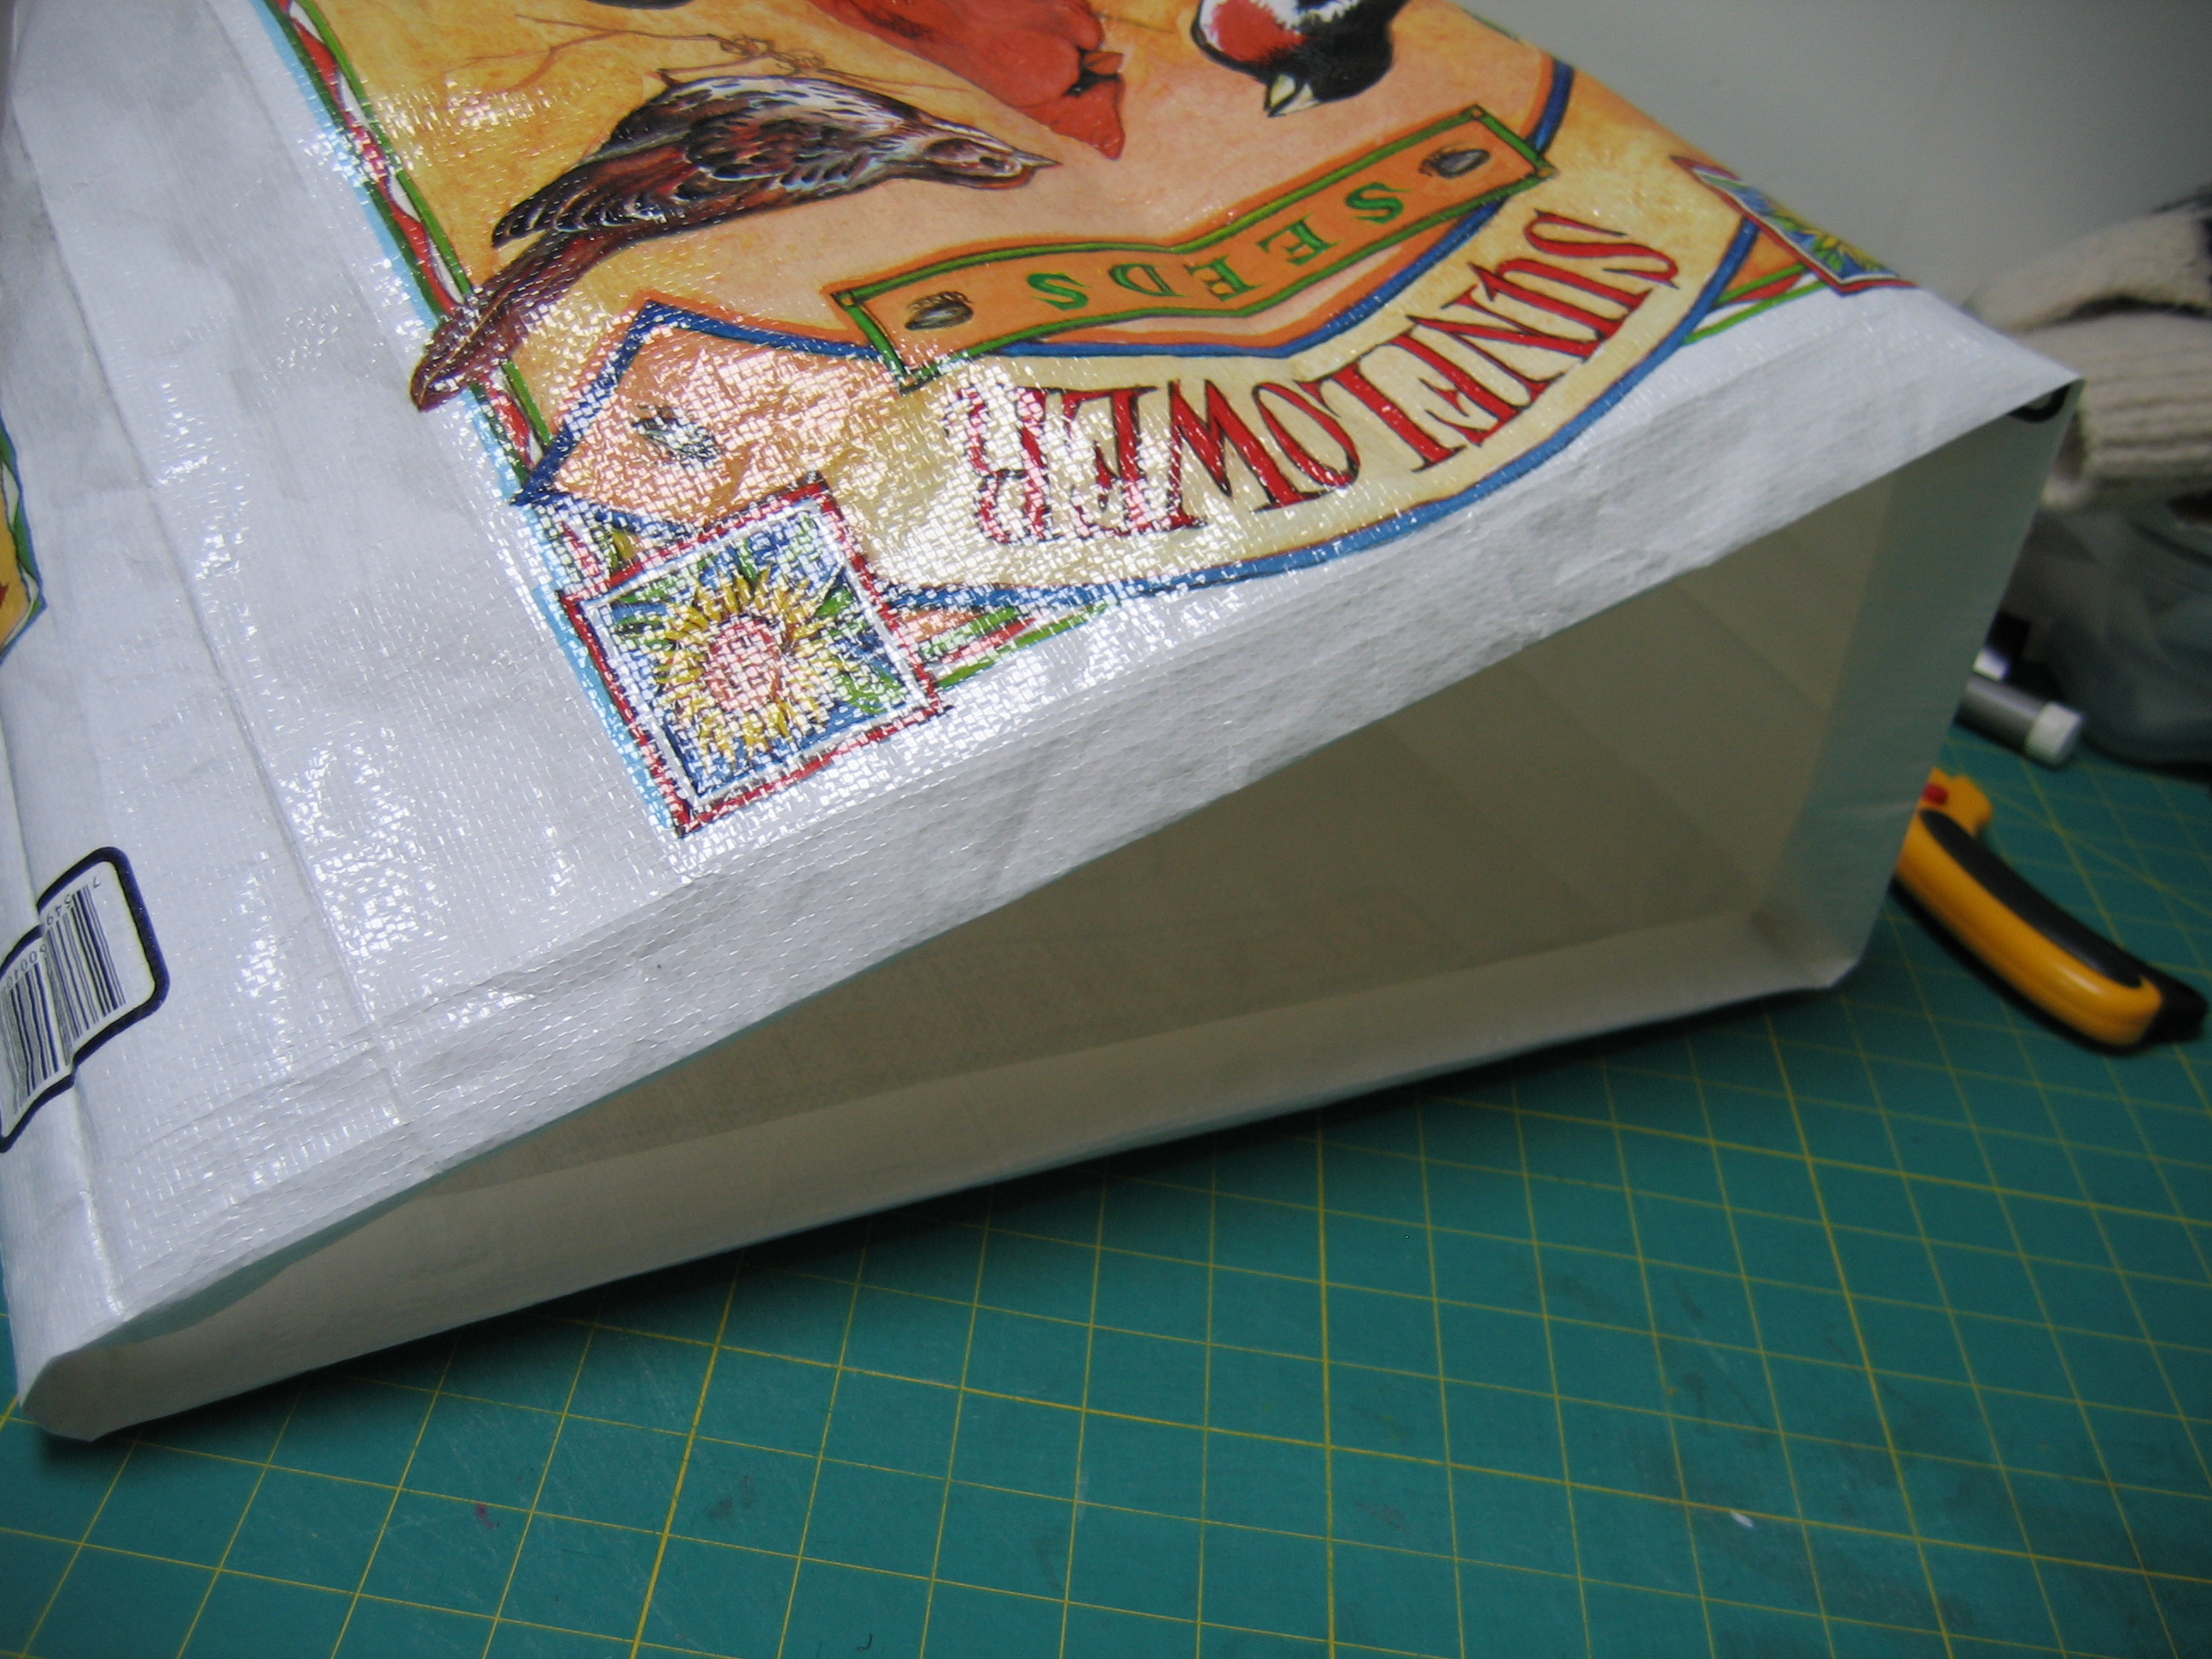 Picture of Top Edge of the Bag